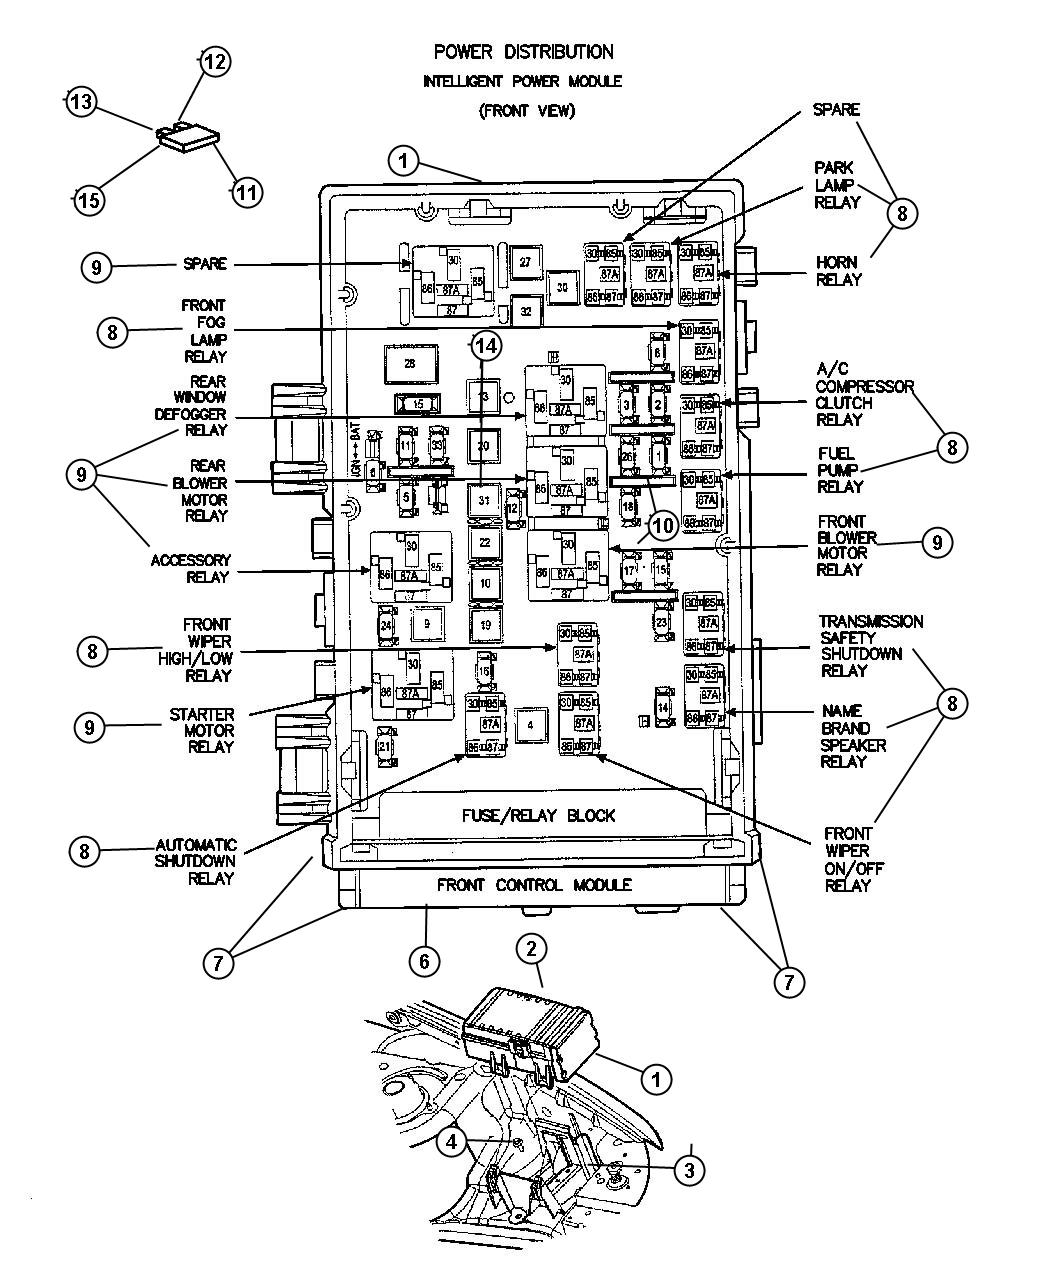 2001 chrysler voyager fuse box diagram  2001  get free